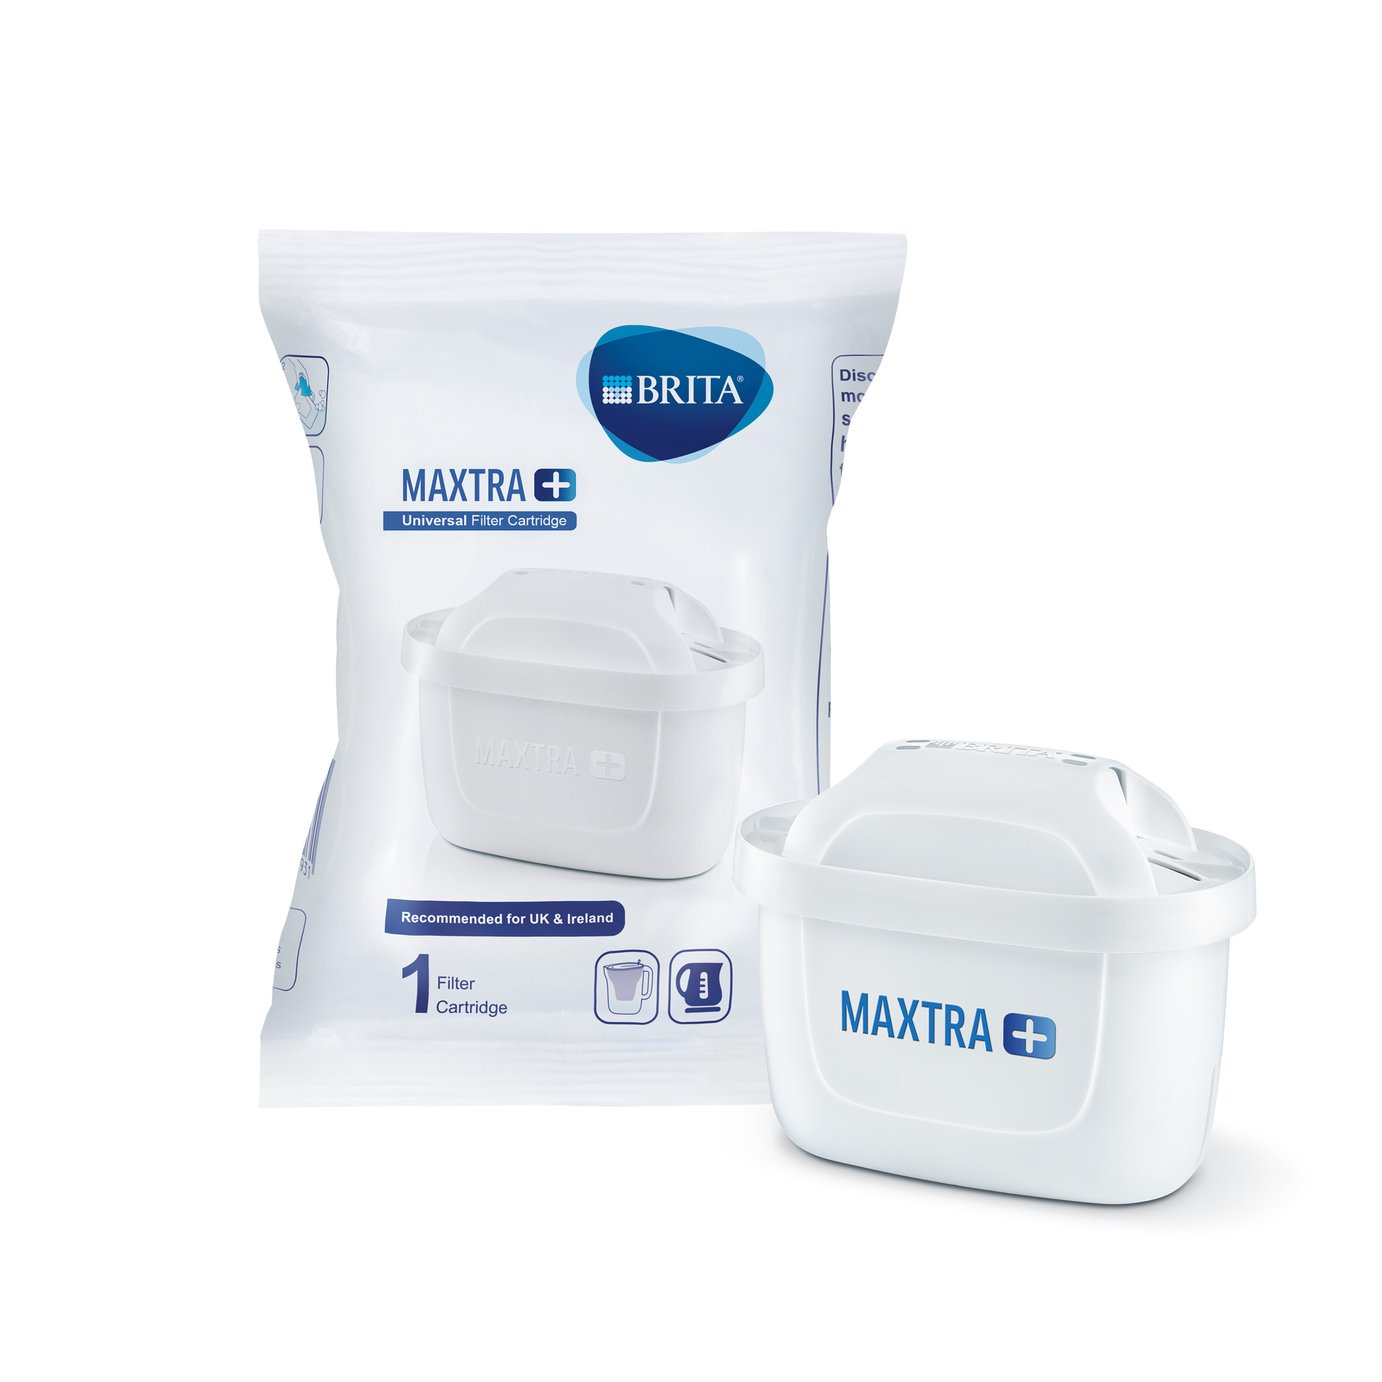 Brita Maxtra Plus Filter Cartridge - Single